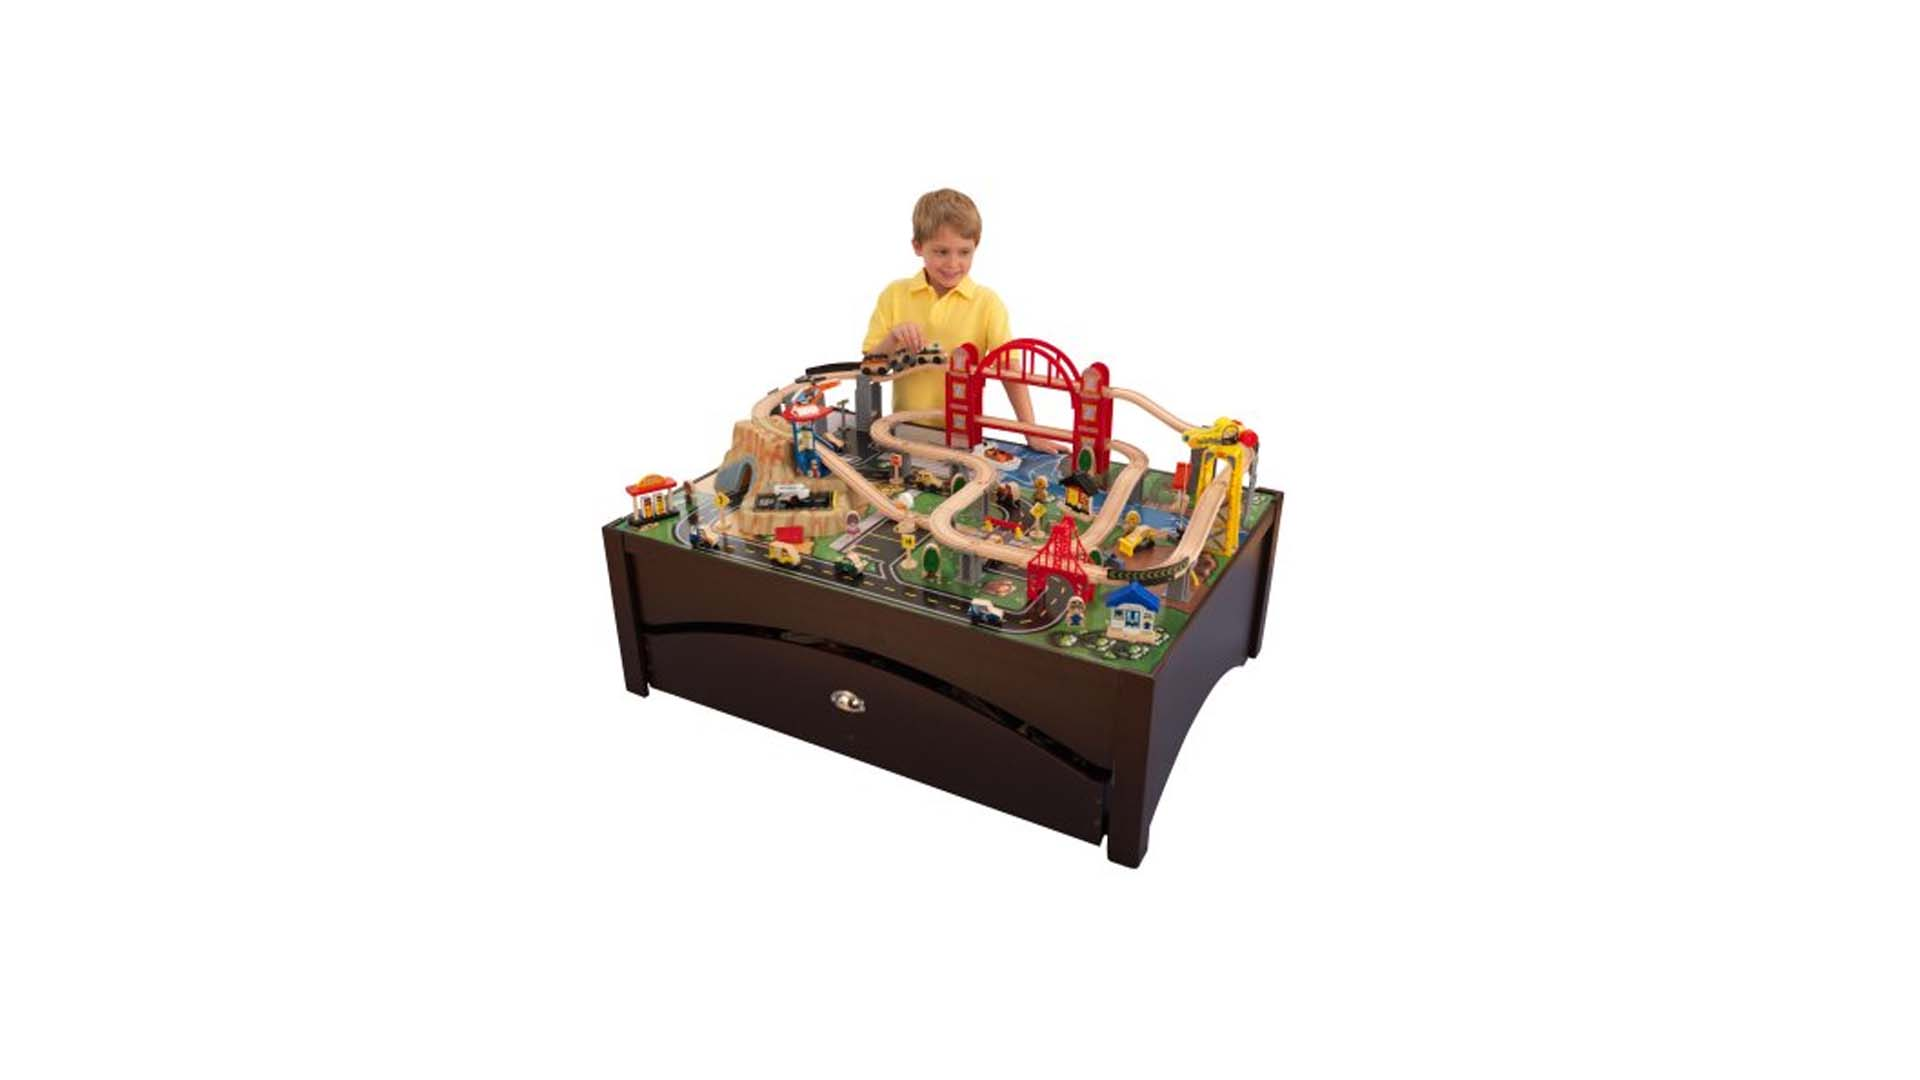 KidKraft Metropolis Train Set U0026 Table For $109.97 At Walmart